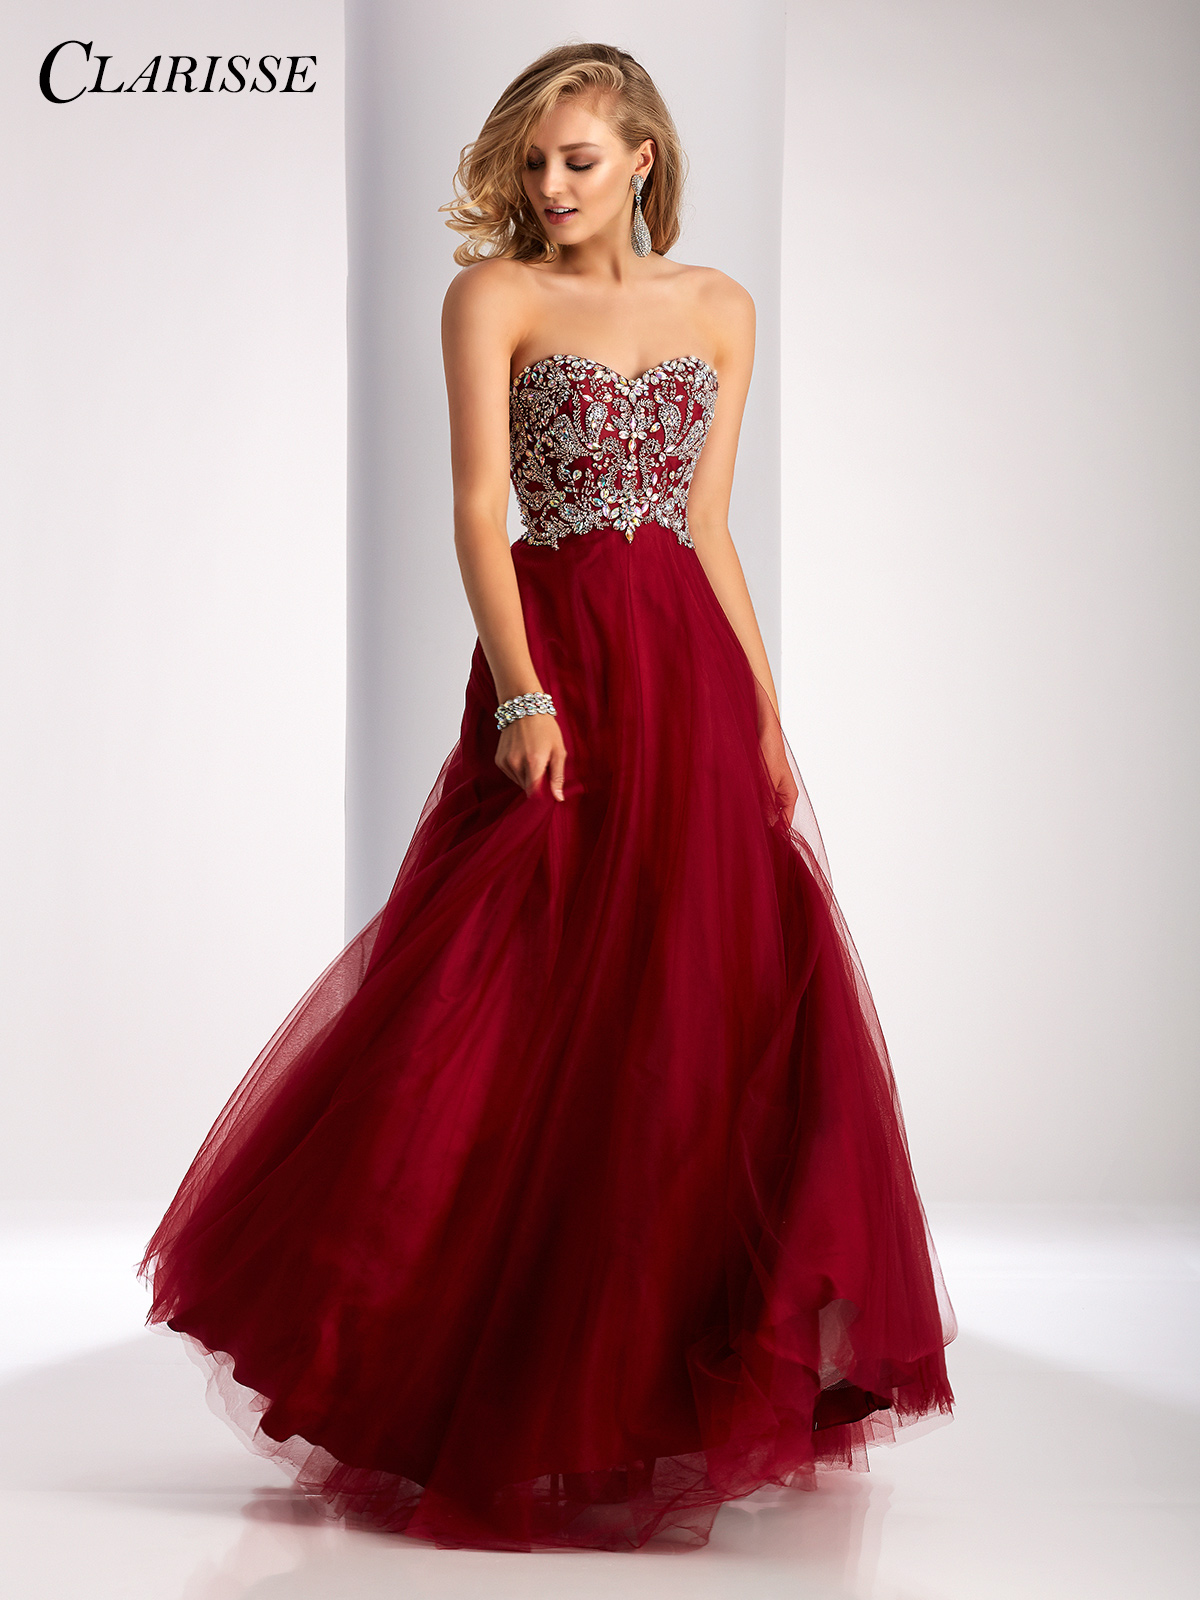 Clarisse Ball Gown 3012 Promgirl Net